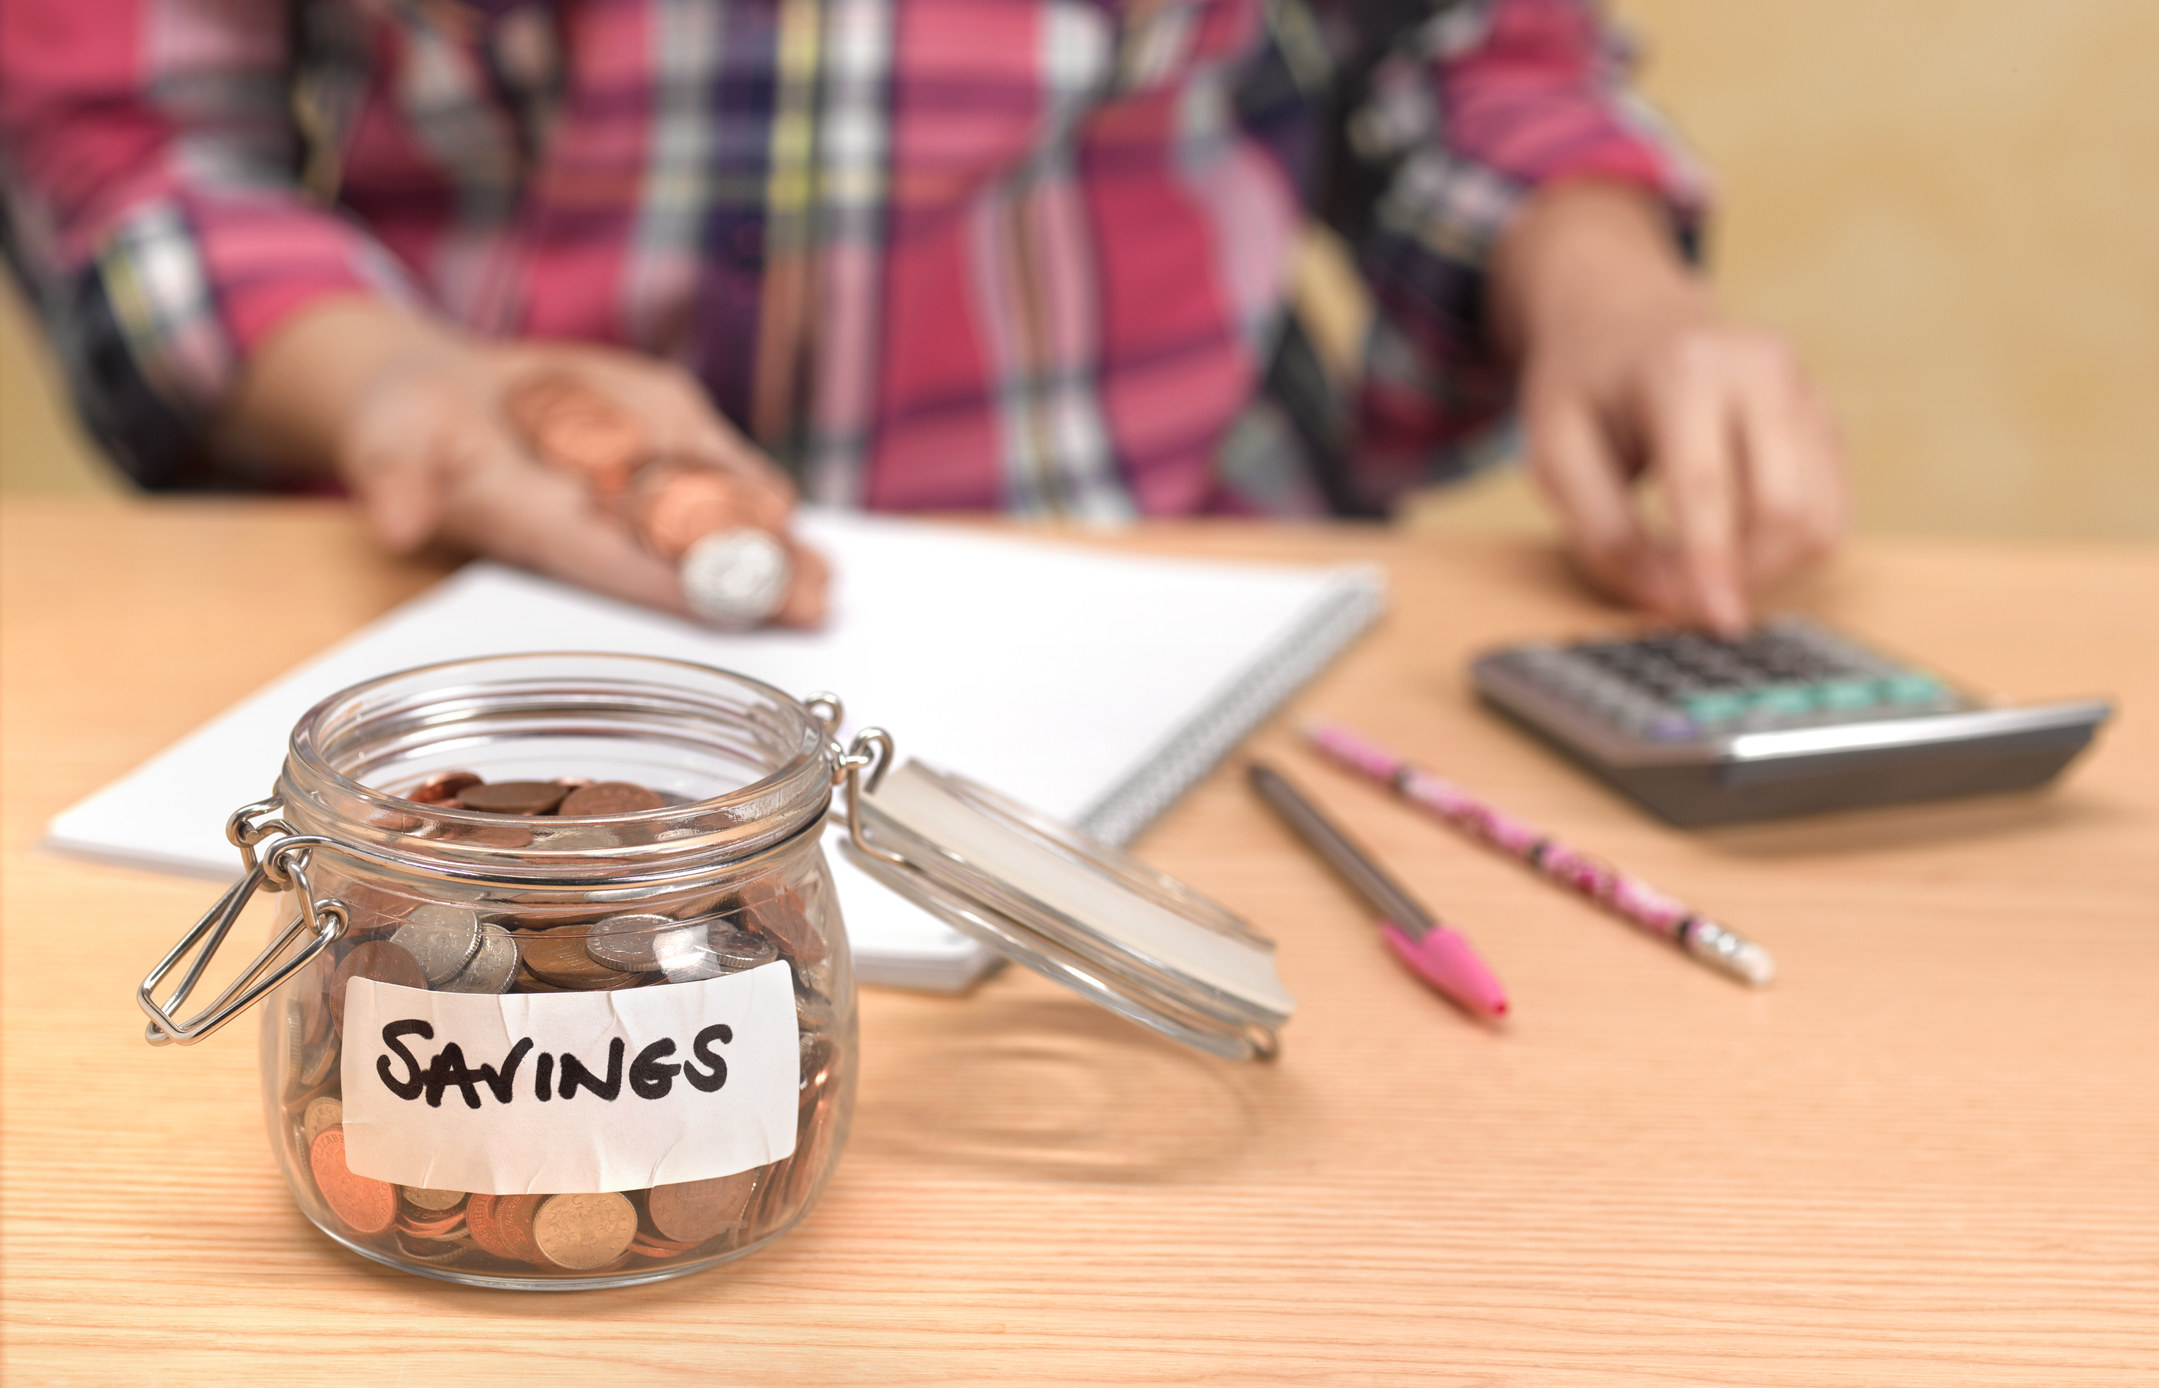 Jar with coins for savings